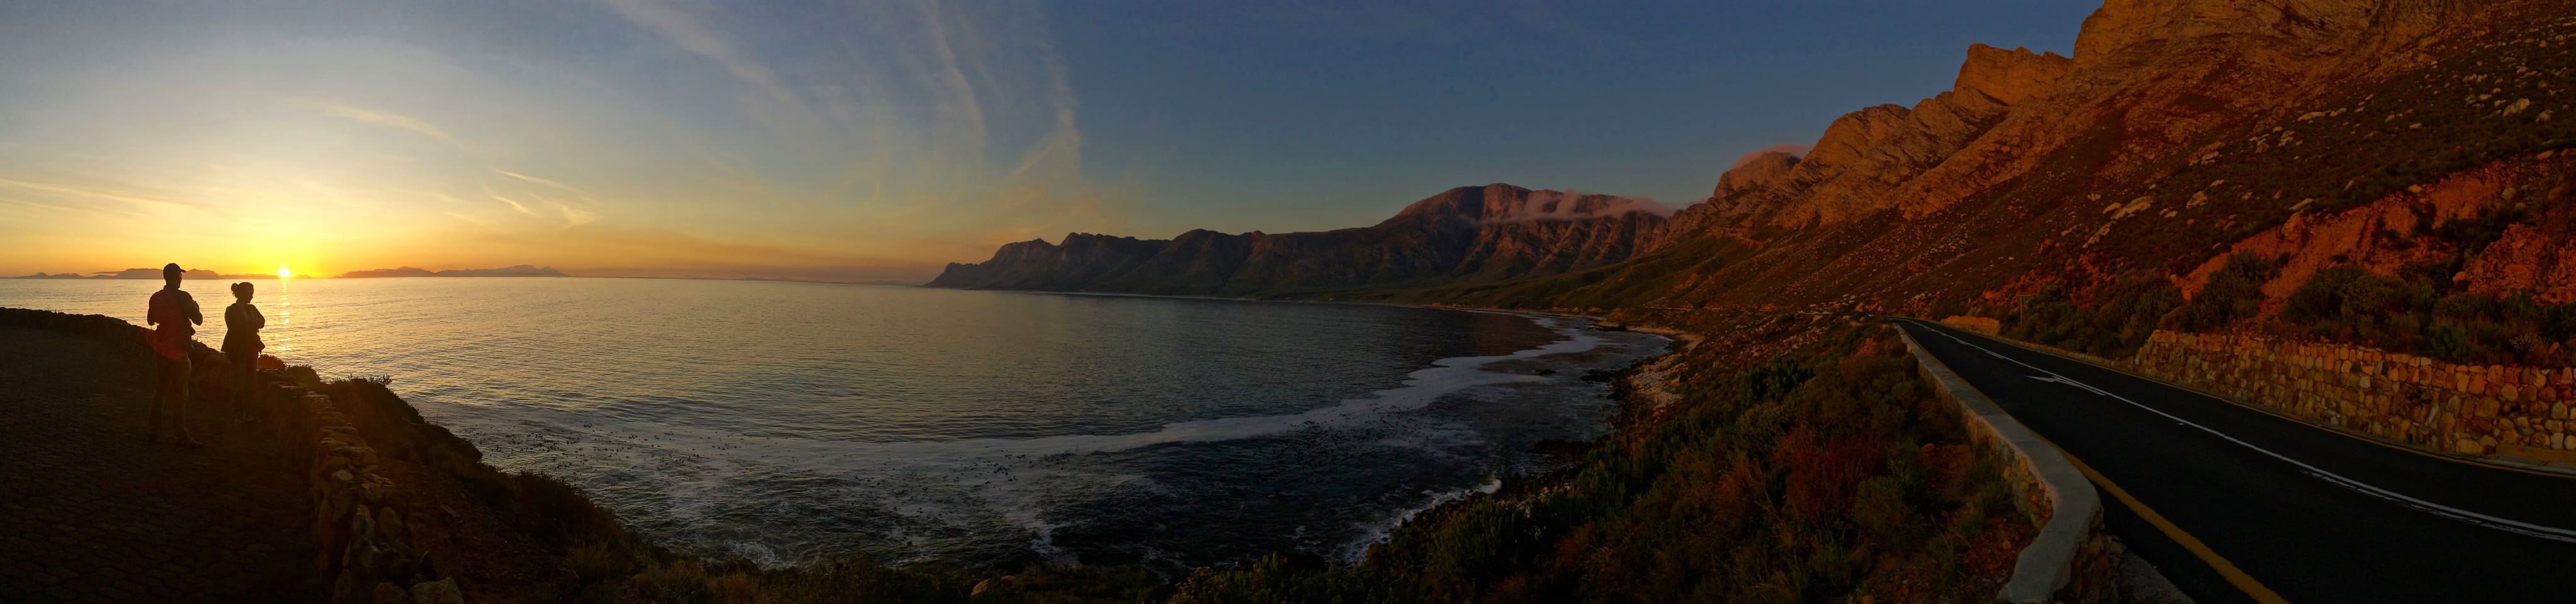 Sunset at Boland Mountain along one of the best road trips in the world